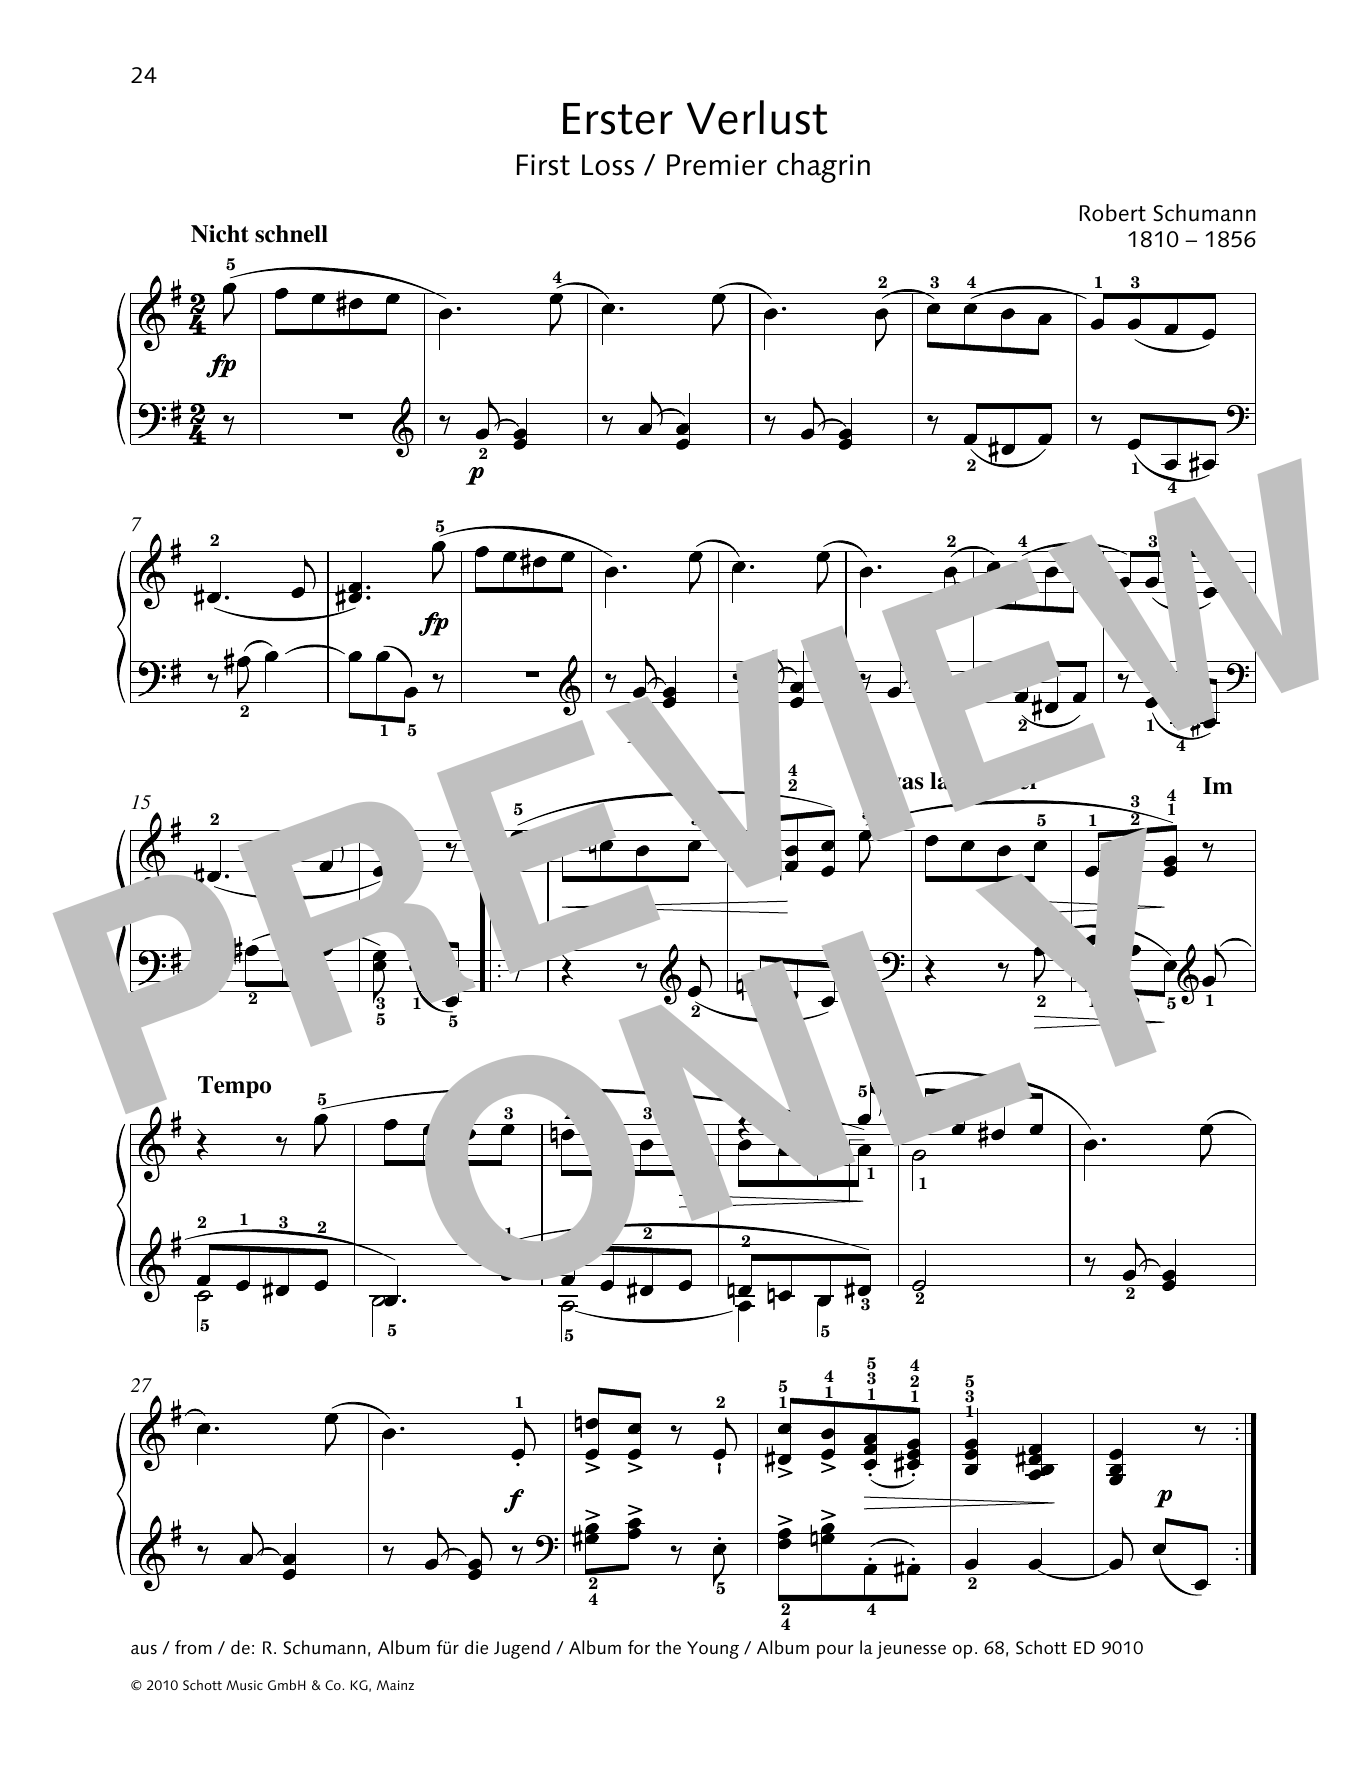 First Loss Sheet Music